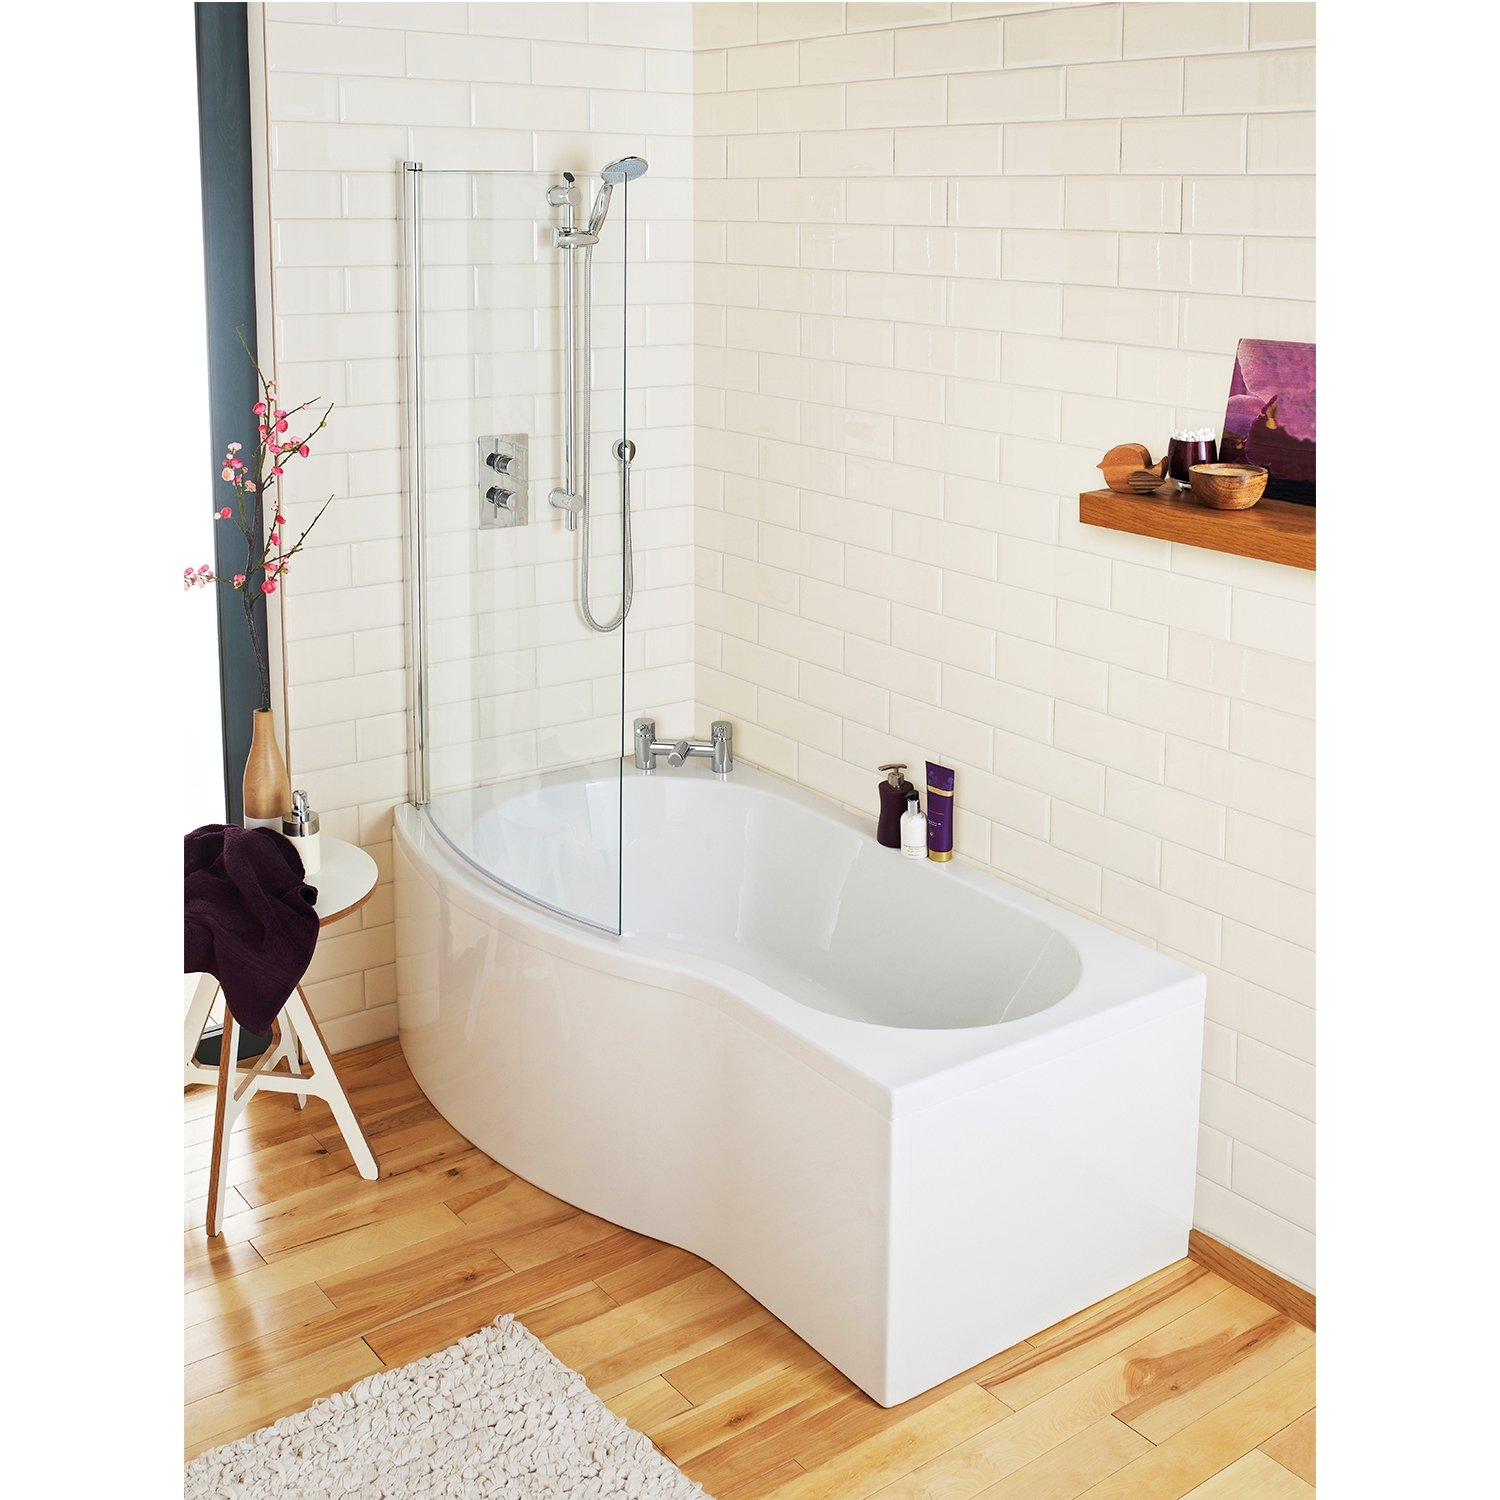 Premier B-Shaped Curved Shower Bath 1500mm x 735mm/800mm Left Handed